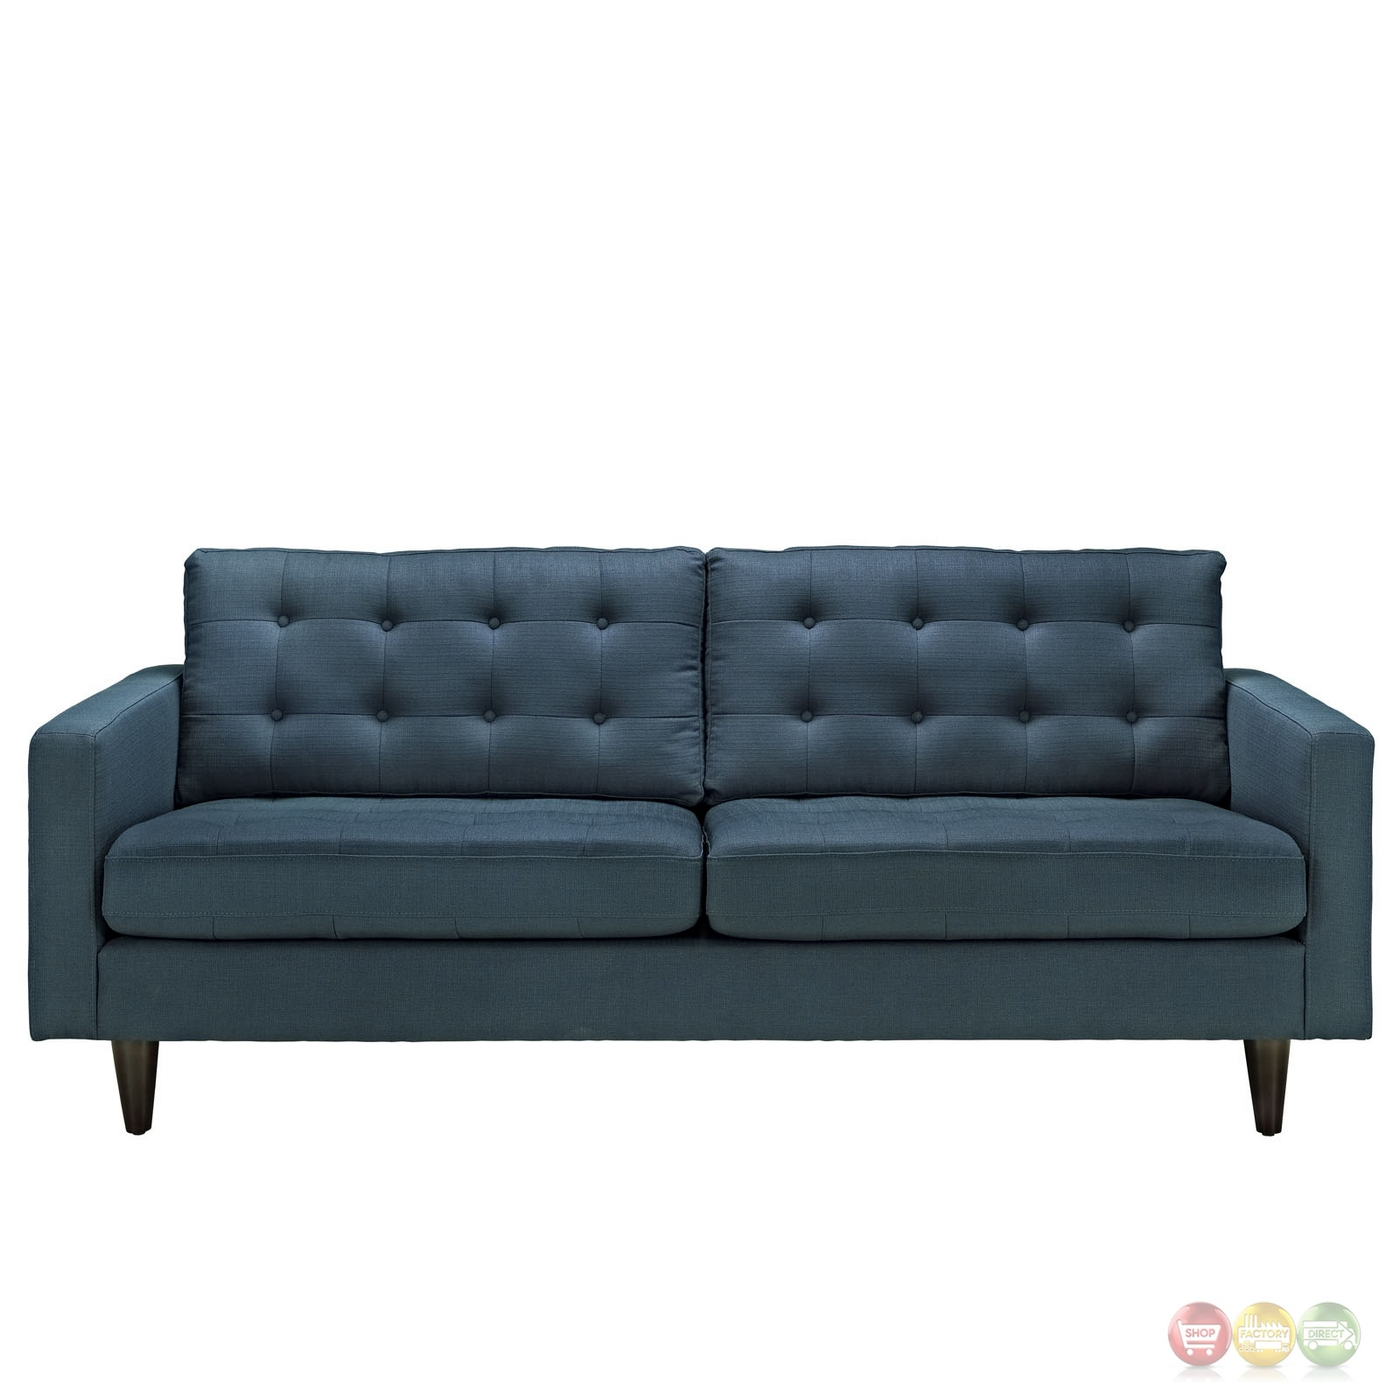 Empress contemporary button tufted upholstered sofa azure for Contemporary furniture